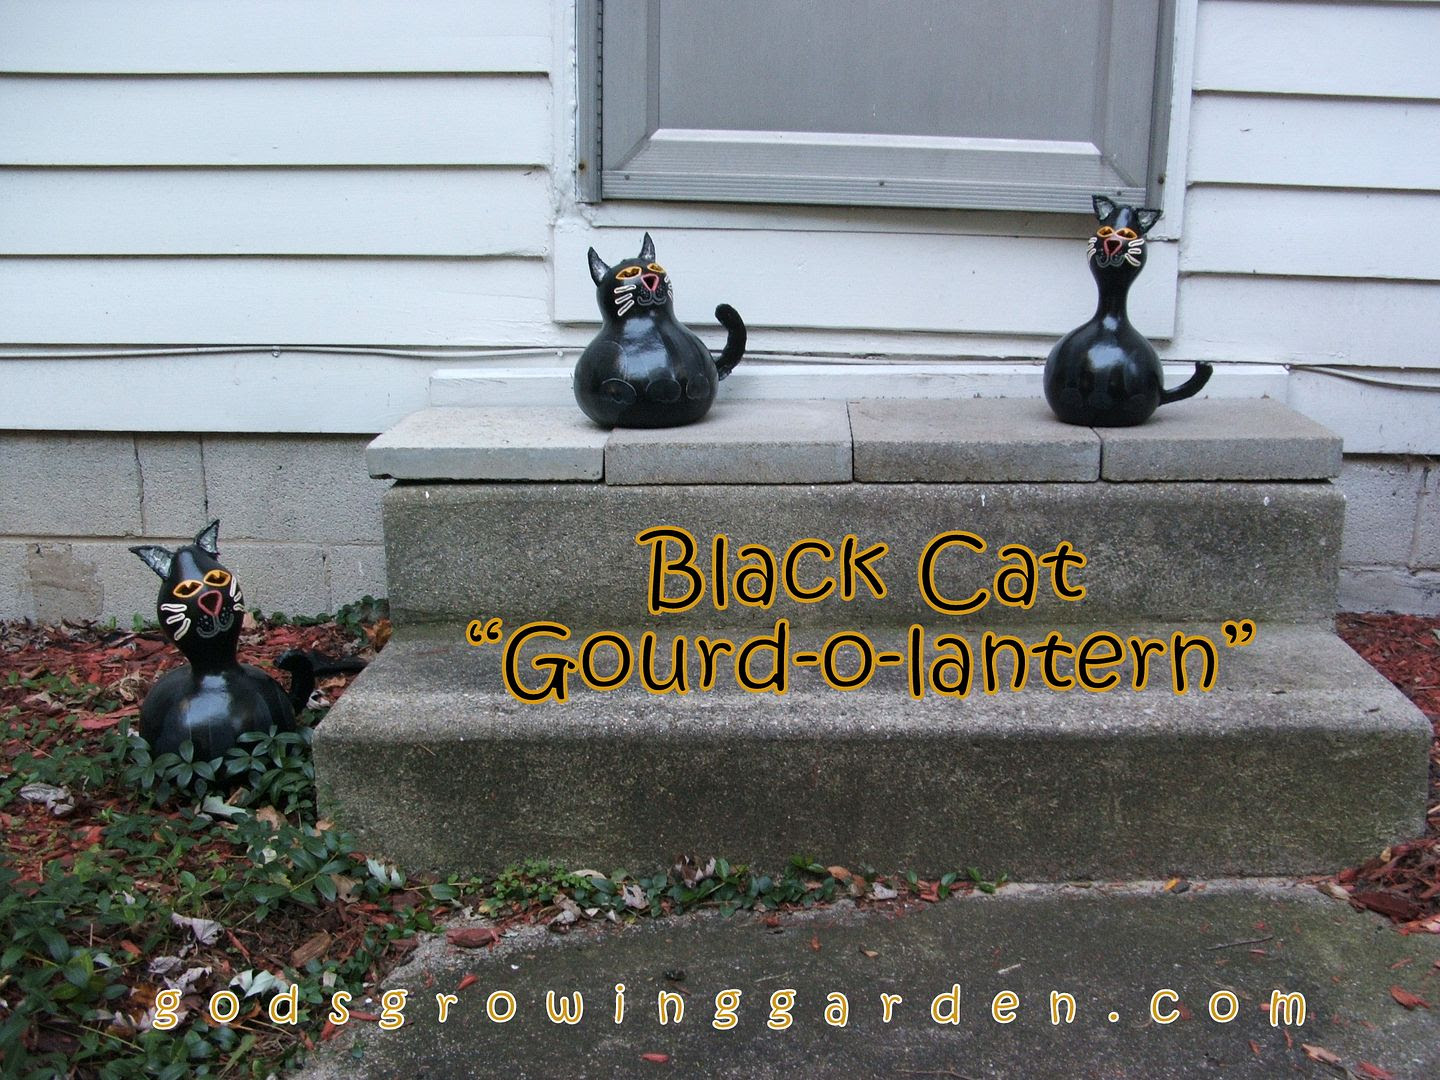 Black Cat Gourd-o-lanterns by Angie Ouellette-Tower for godsgrowinggarden.com photo DSCF1952_zpsfef94ea3.jpg